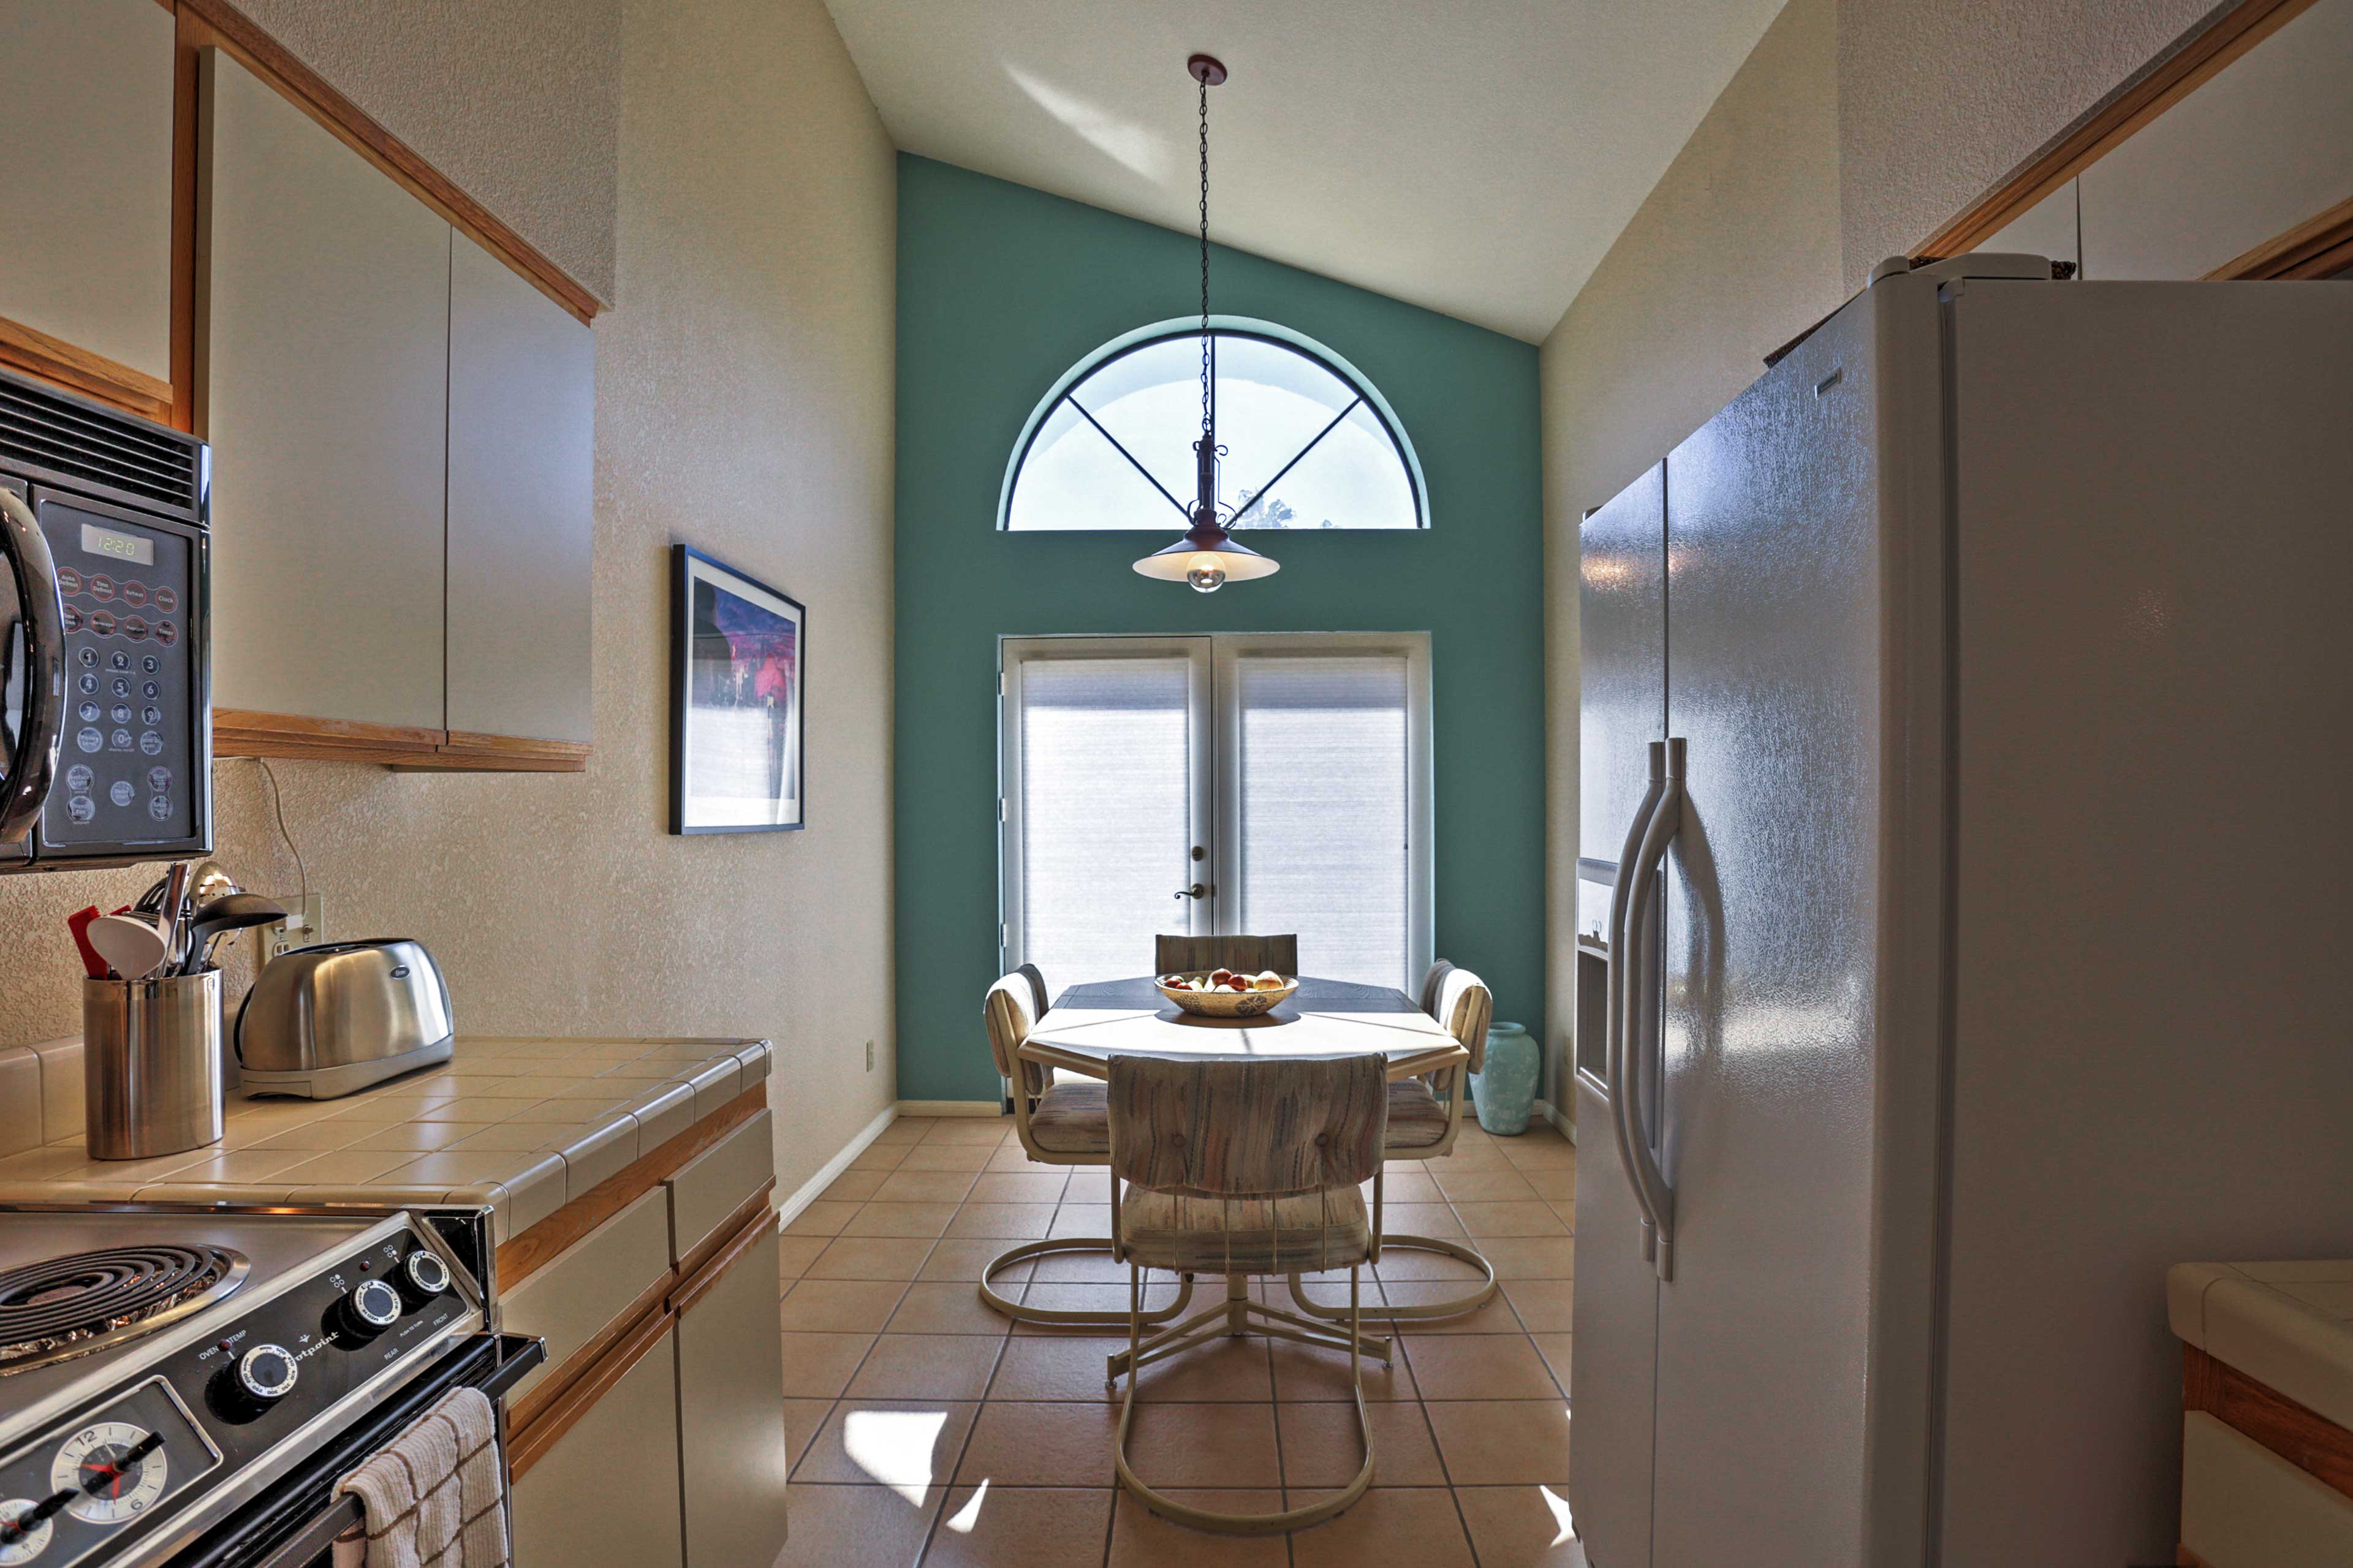 The kitchen also has a sunny nook for the kitchen table.